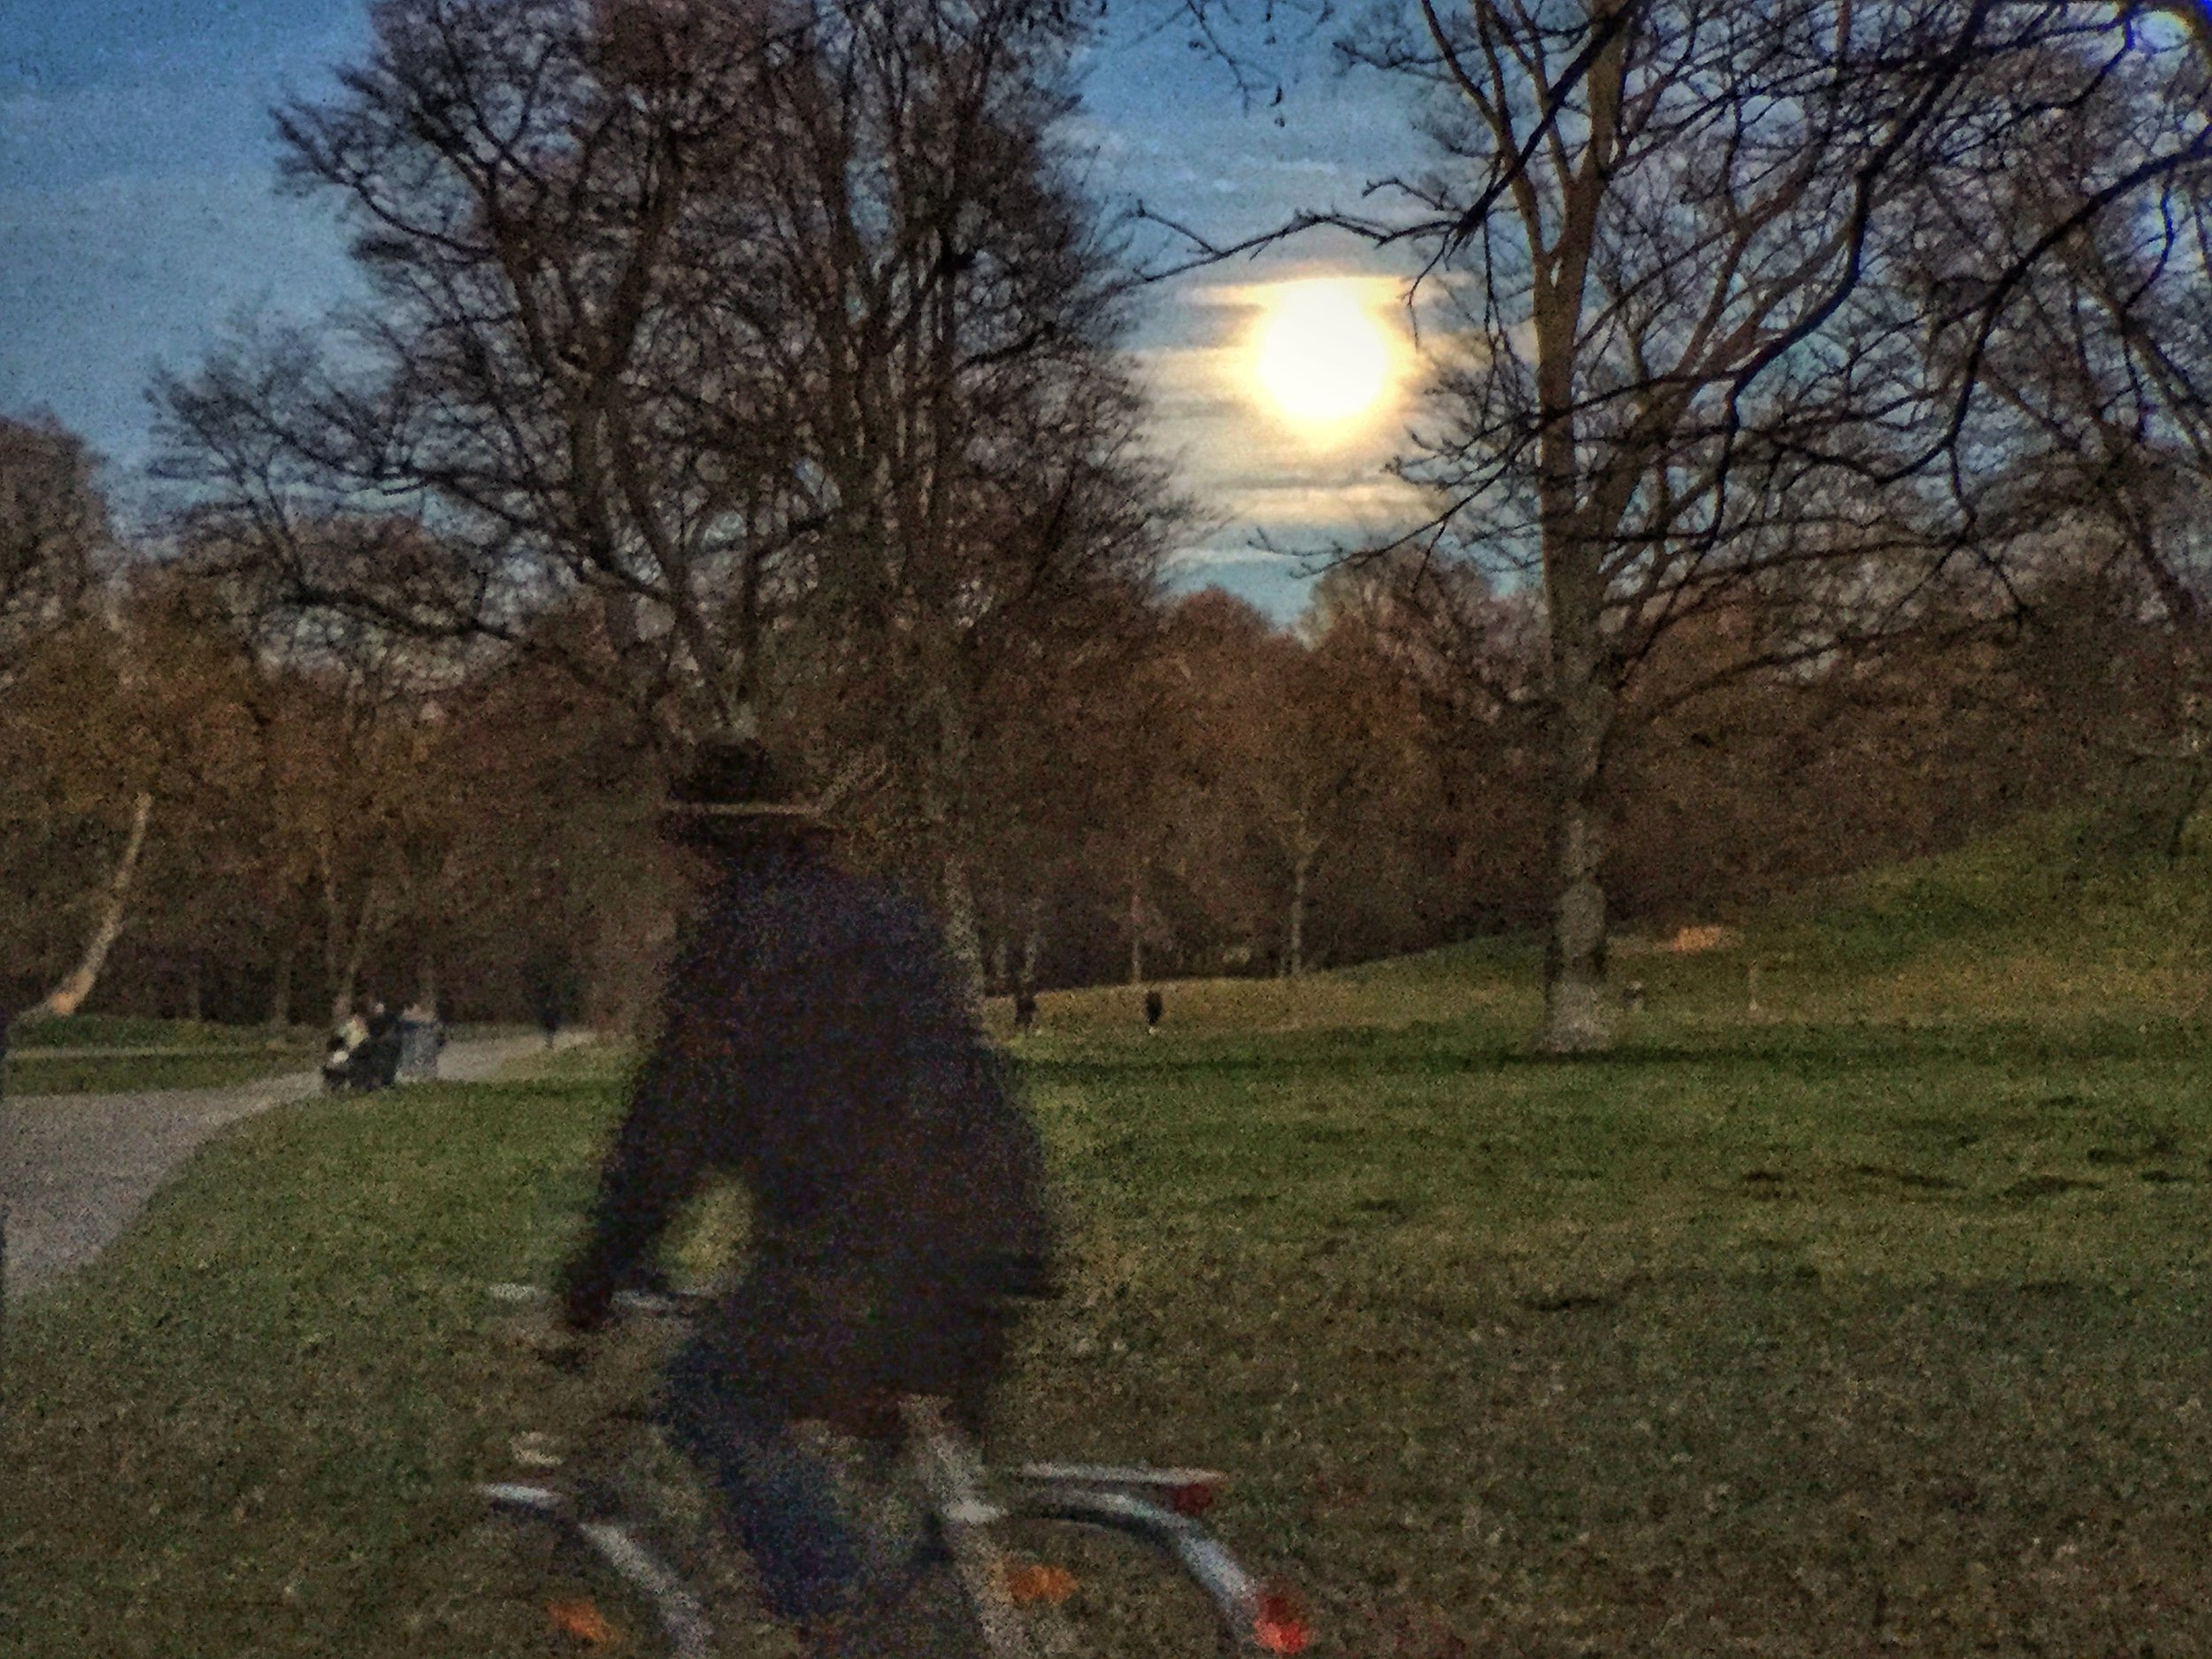 Chuck paddling though the Munich Englischer Garten on Christmas Eve while the moon is rising and all church bells are ringing...